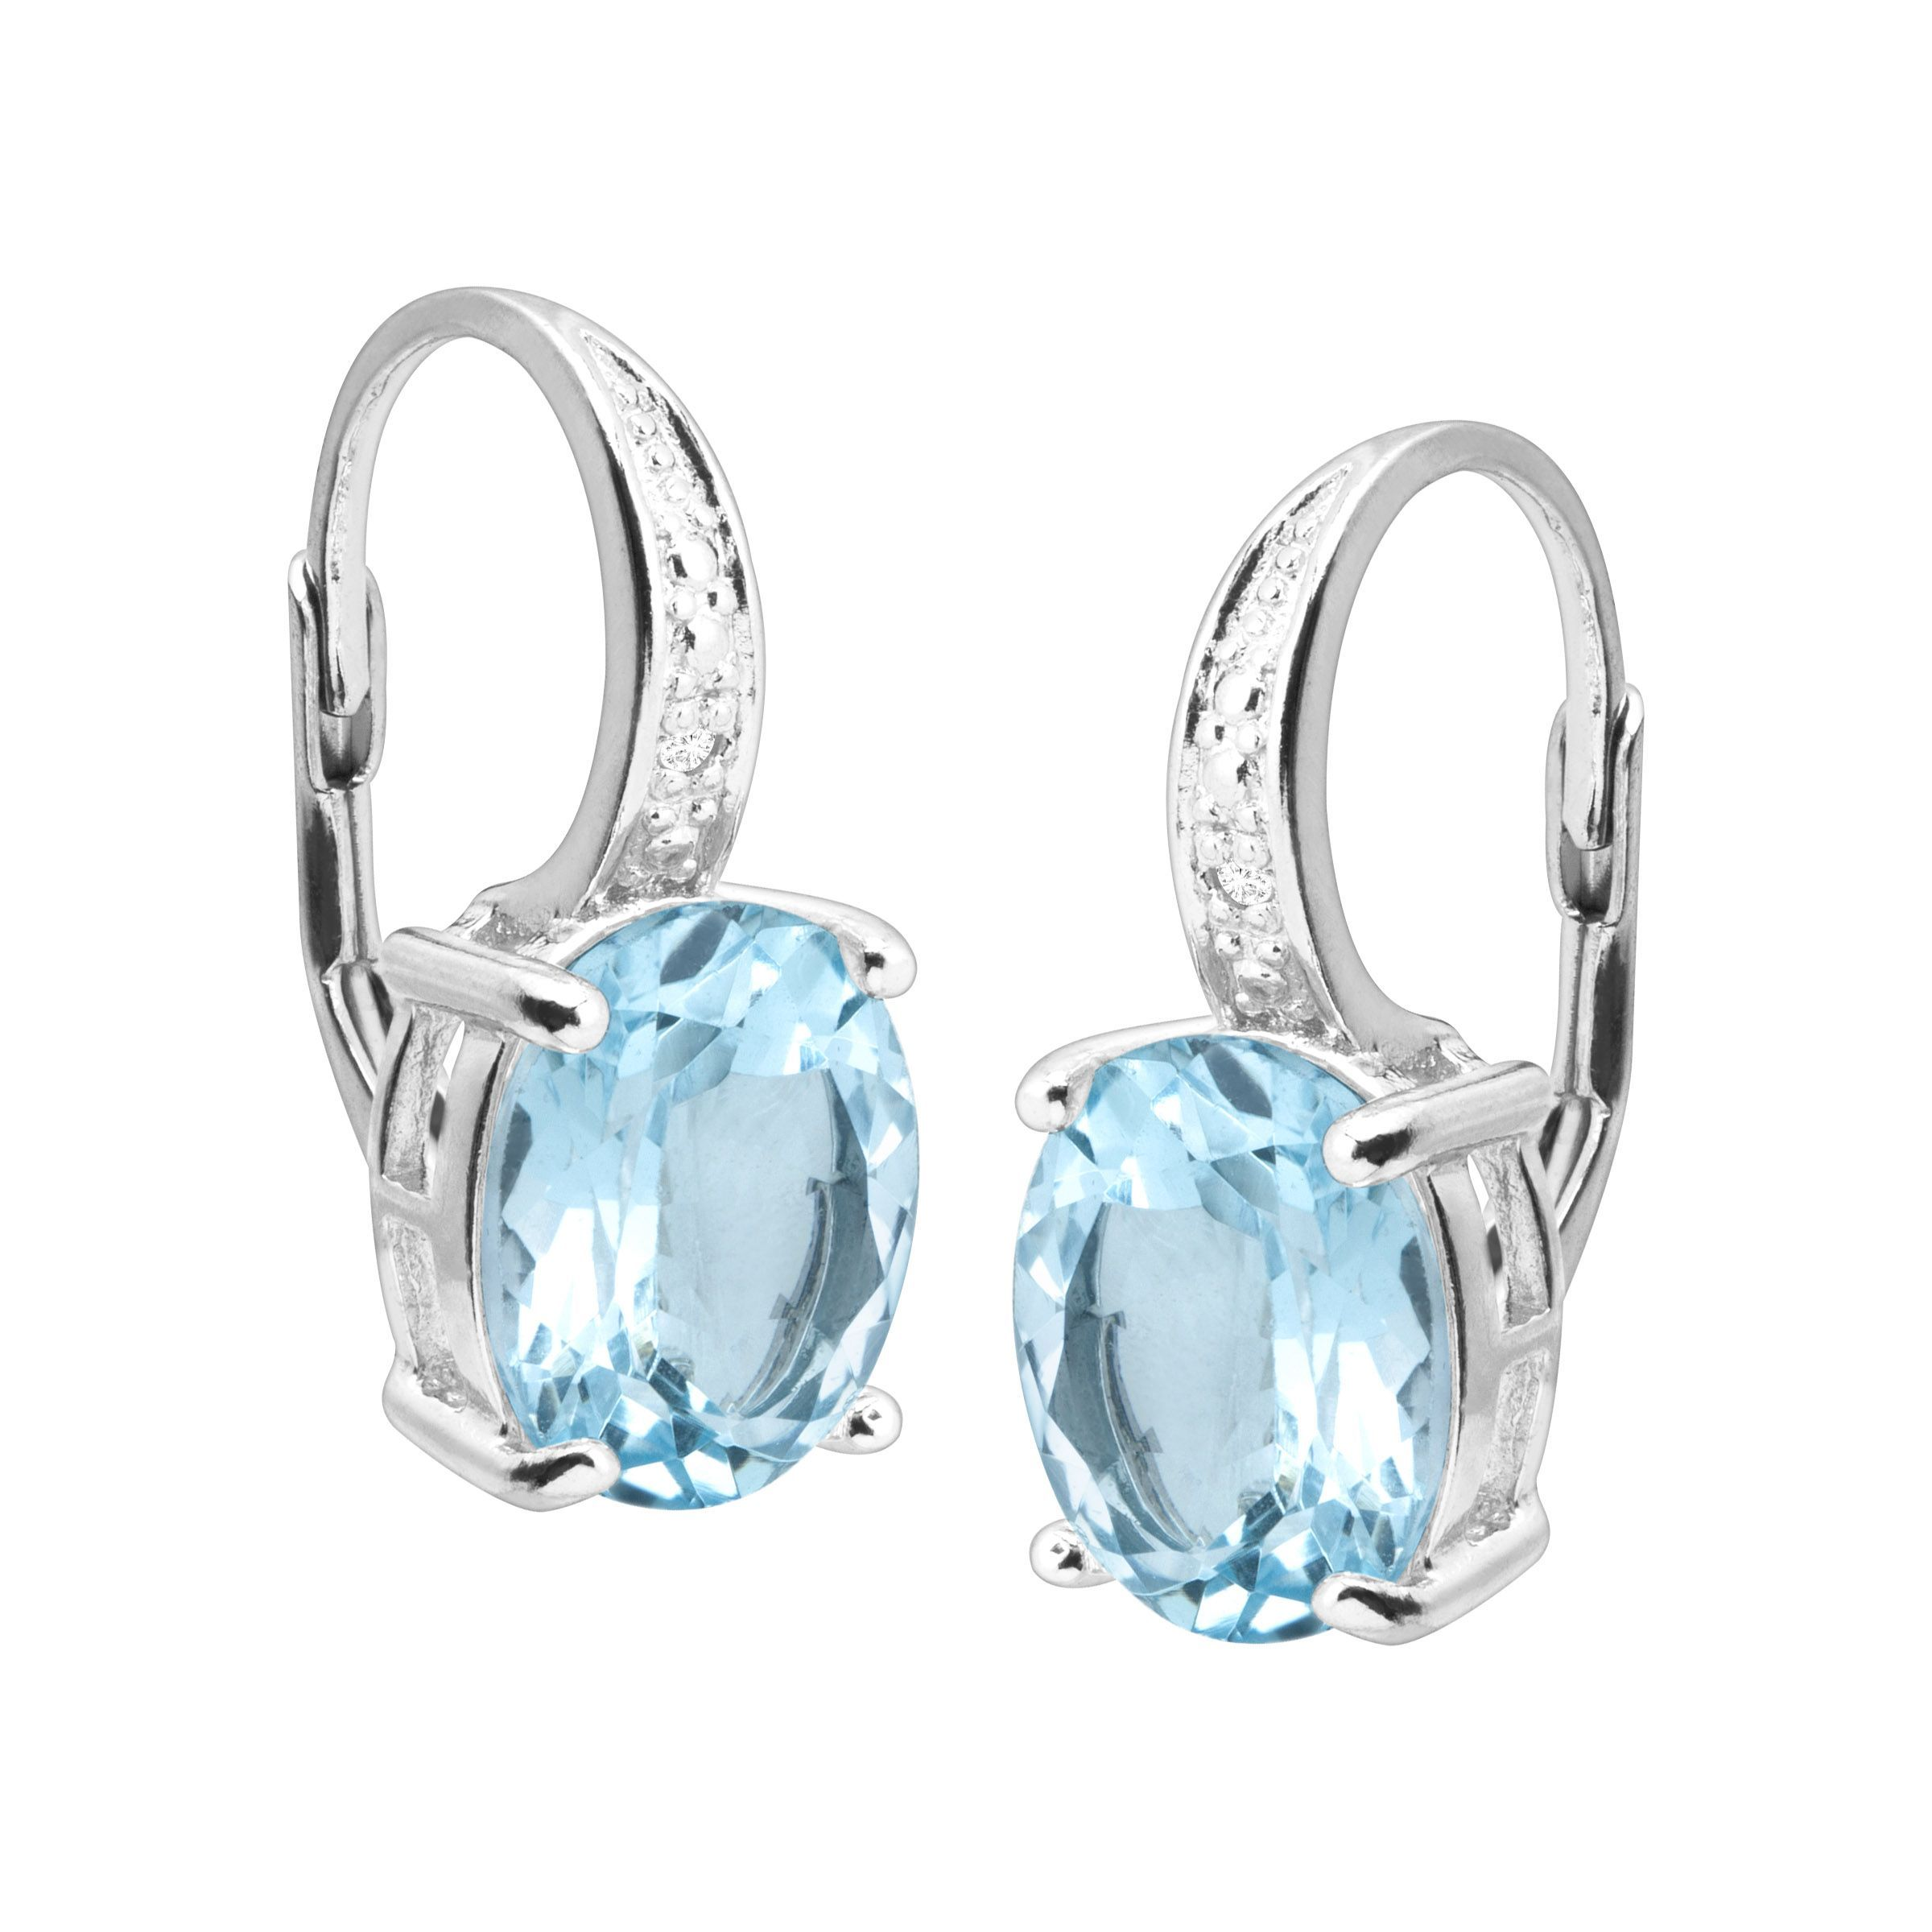 Natural-Gemstone-Drop-Earrings-with-Diamonds-in-Sterling-Silver thumbnail 12